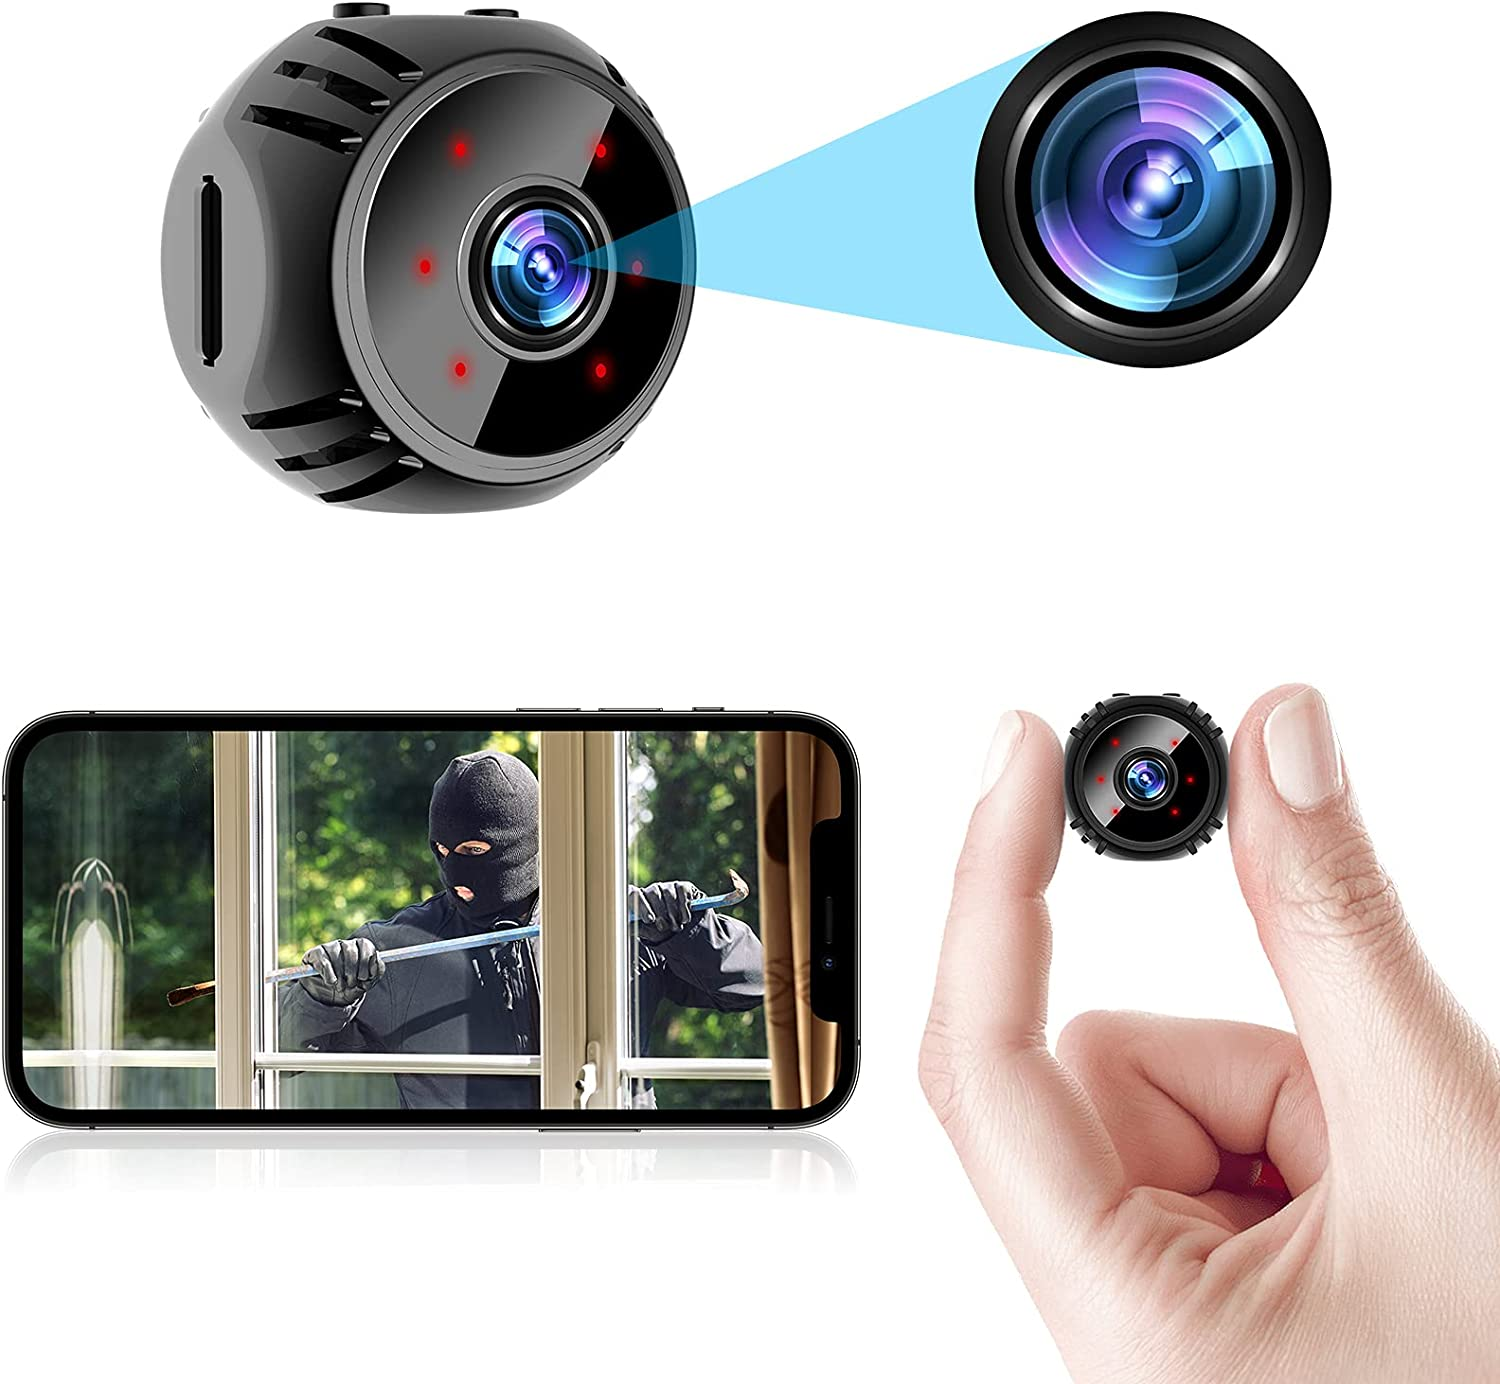 ORHIDAM Mini Spy Camera Wireless Hidden Nanny Cam WiFi Baby Monitor 1080P HD Home Security Indoor Video Recorder with Live Feed Phone APP Night Vision Motion Detection